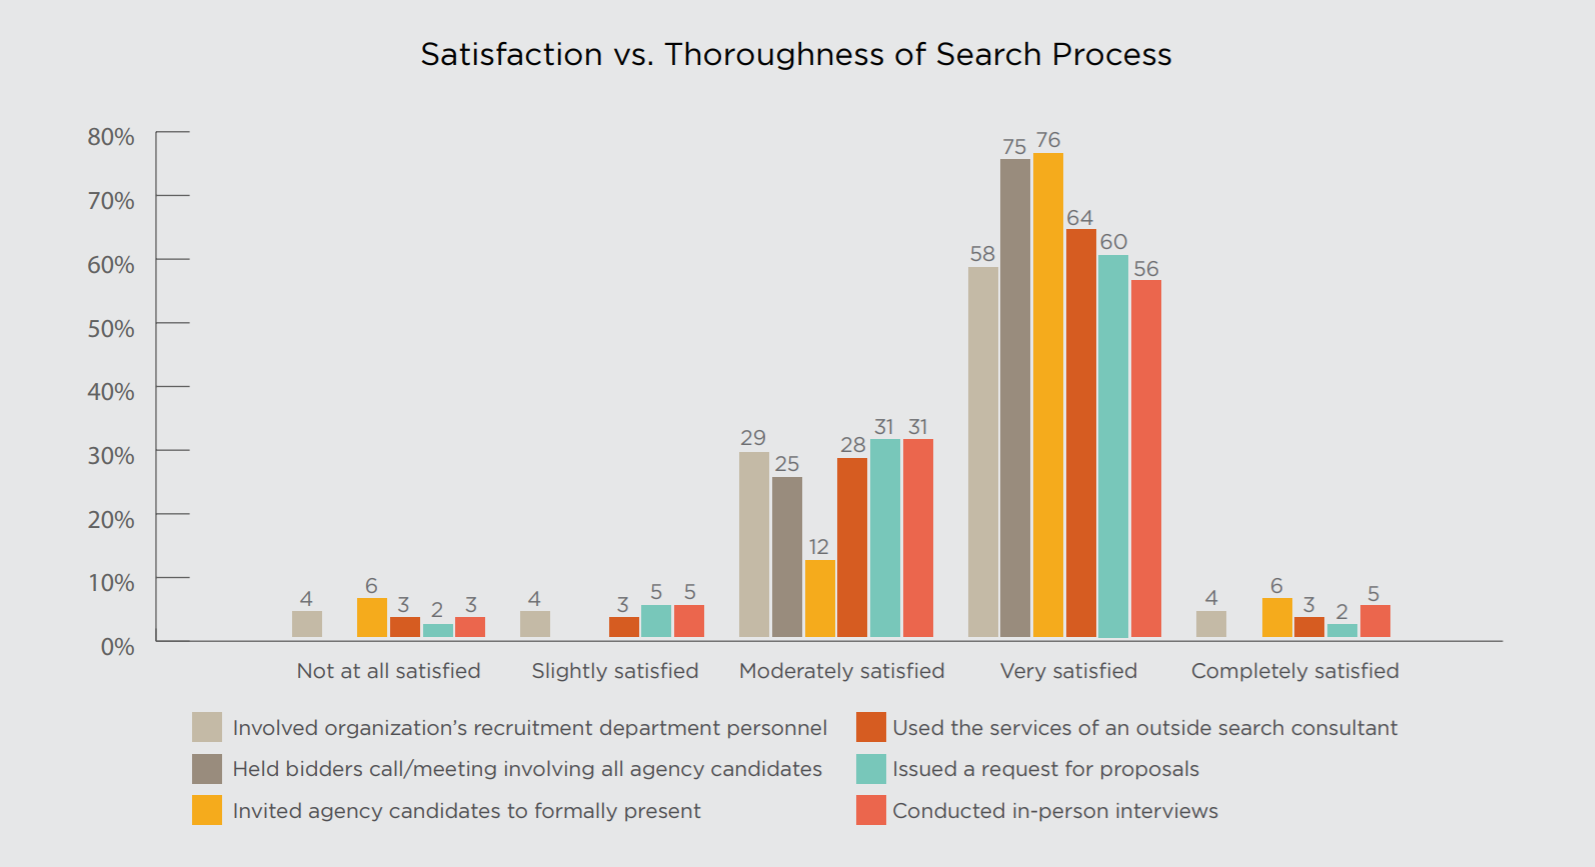 What do companies need to do to improve agency search outcomes?